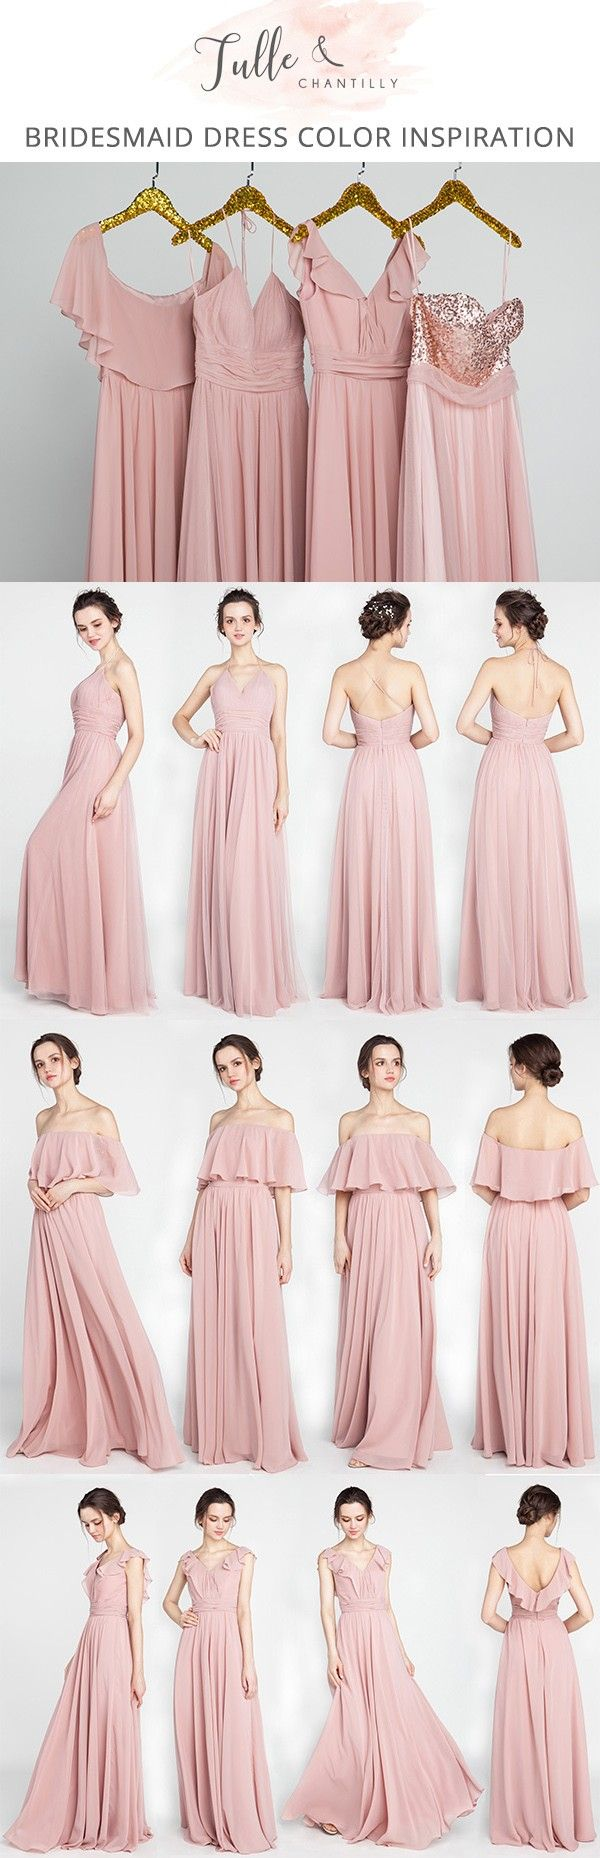 f54b6251c97 Long   Short Bridesmaid Dresses From  89 in Size 2-30 and 100+ Color ...